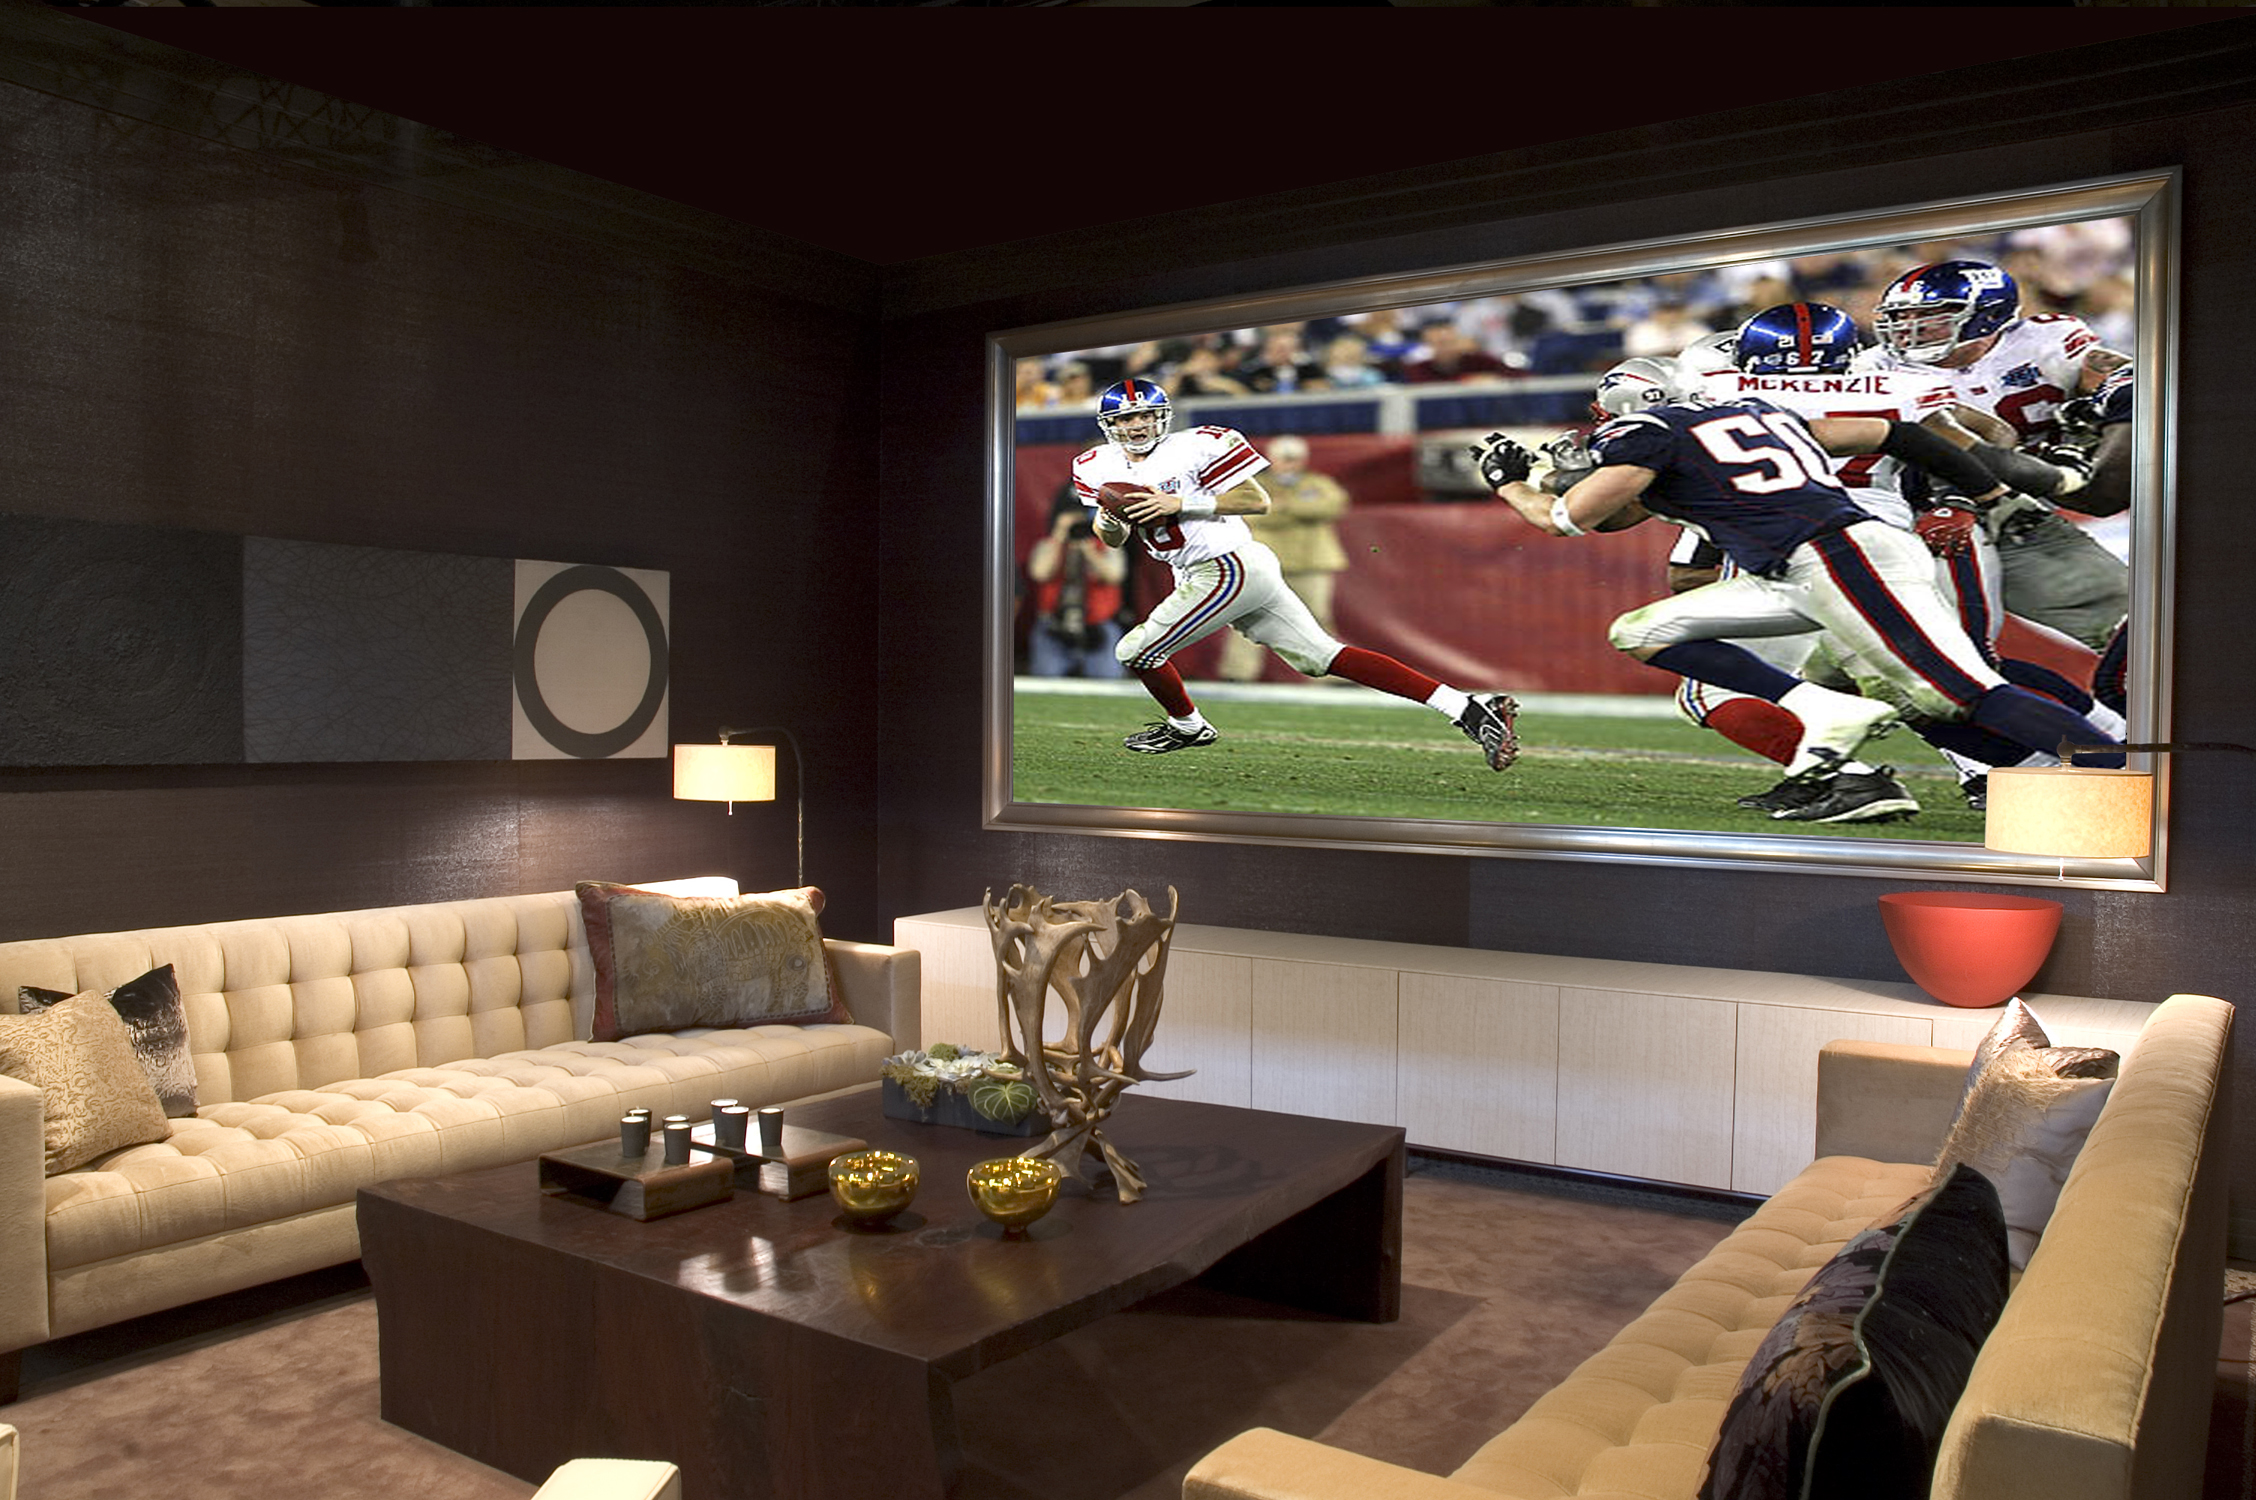 Media Room Decor Ideas Part - 49: College Bowl And Superbowl: Time For An Upgraded BIG Screen TV Or .